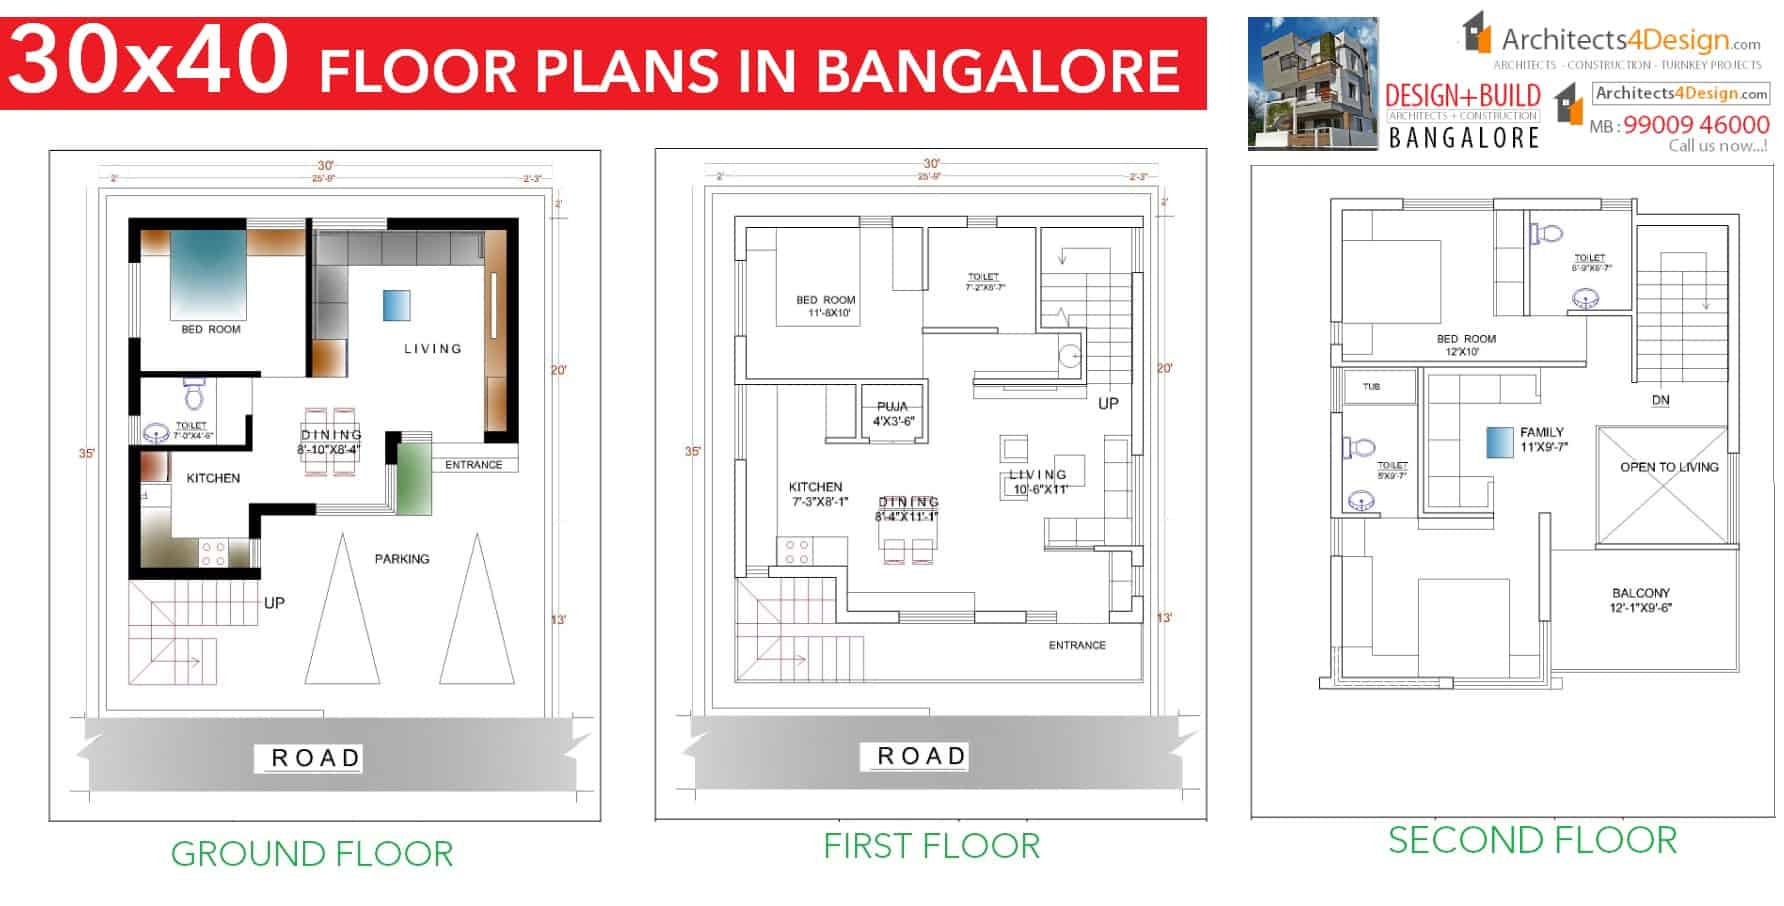 30x40 house plans in bangalore for g 1 g 2 g 3 g 4 floors for 30x40 house plans